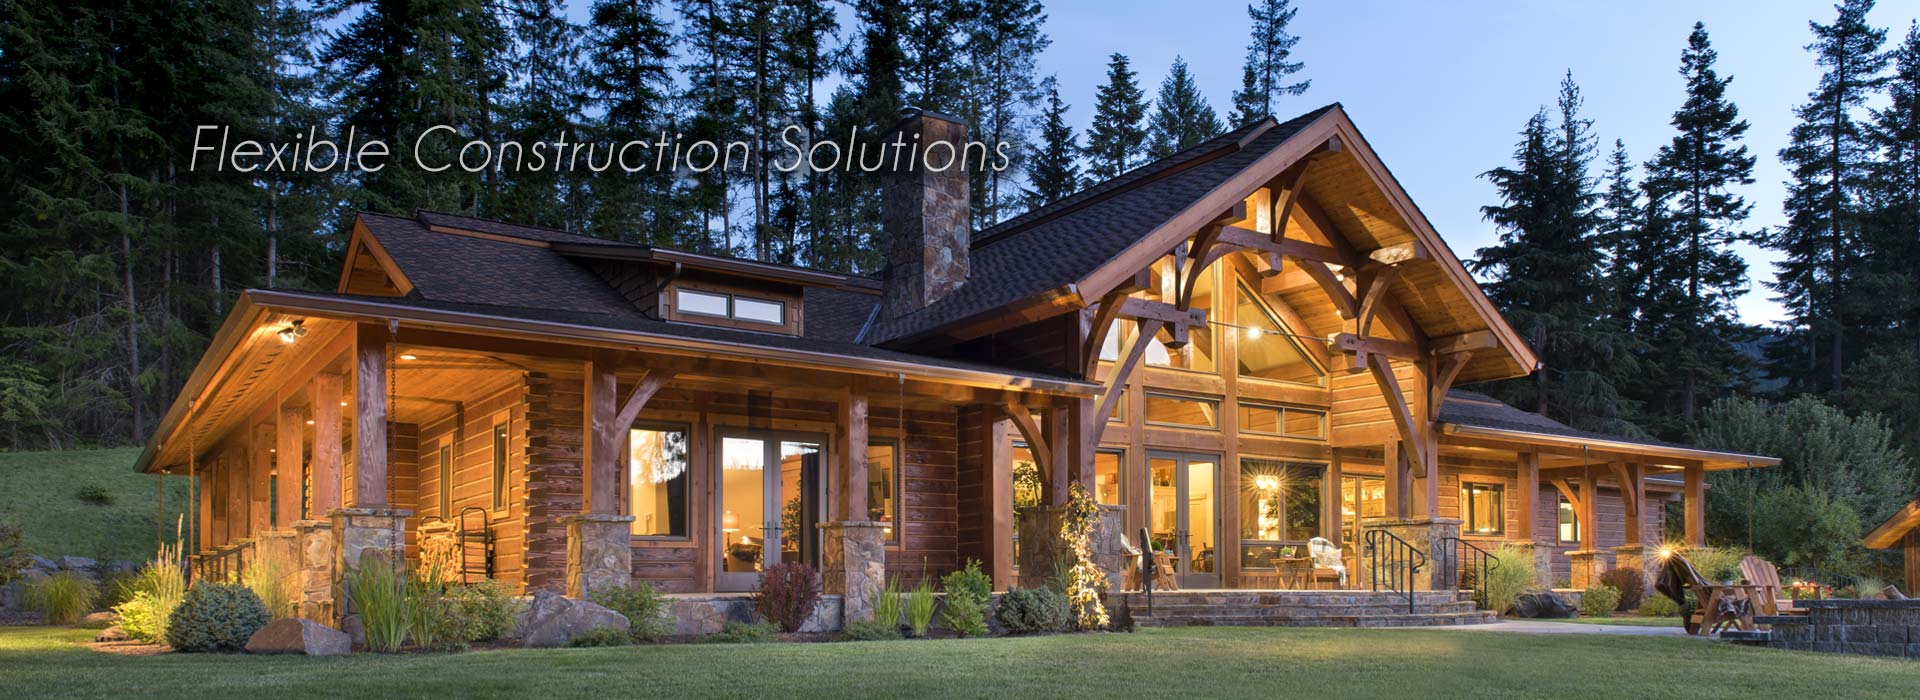 Hybrid Log Timber Home